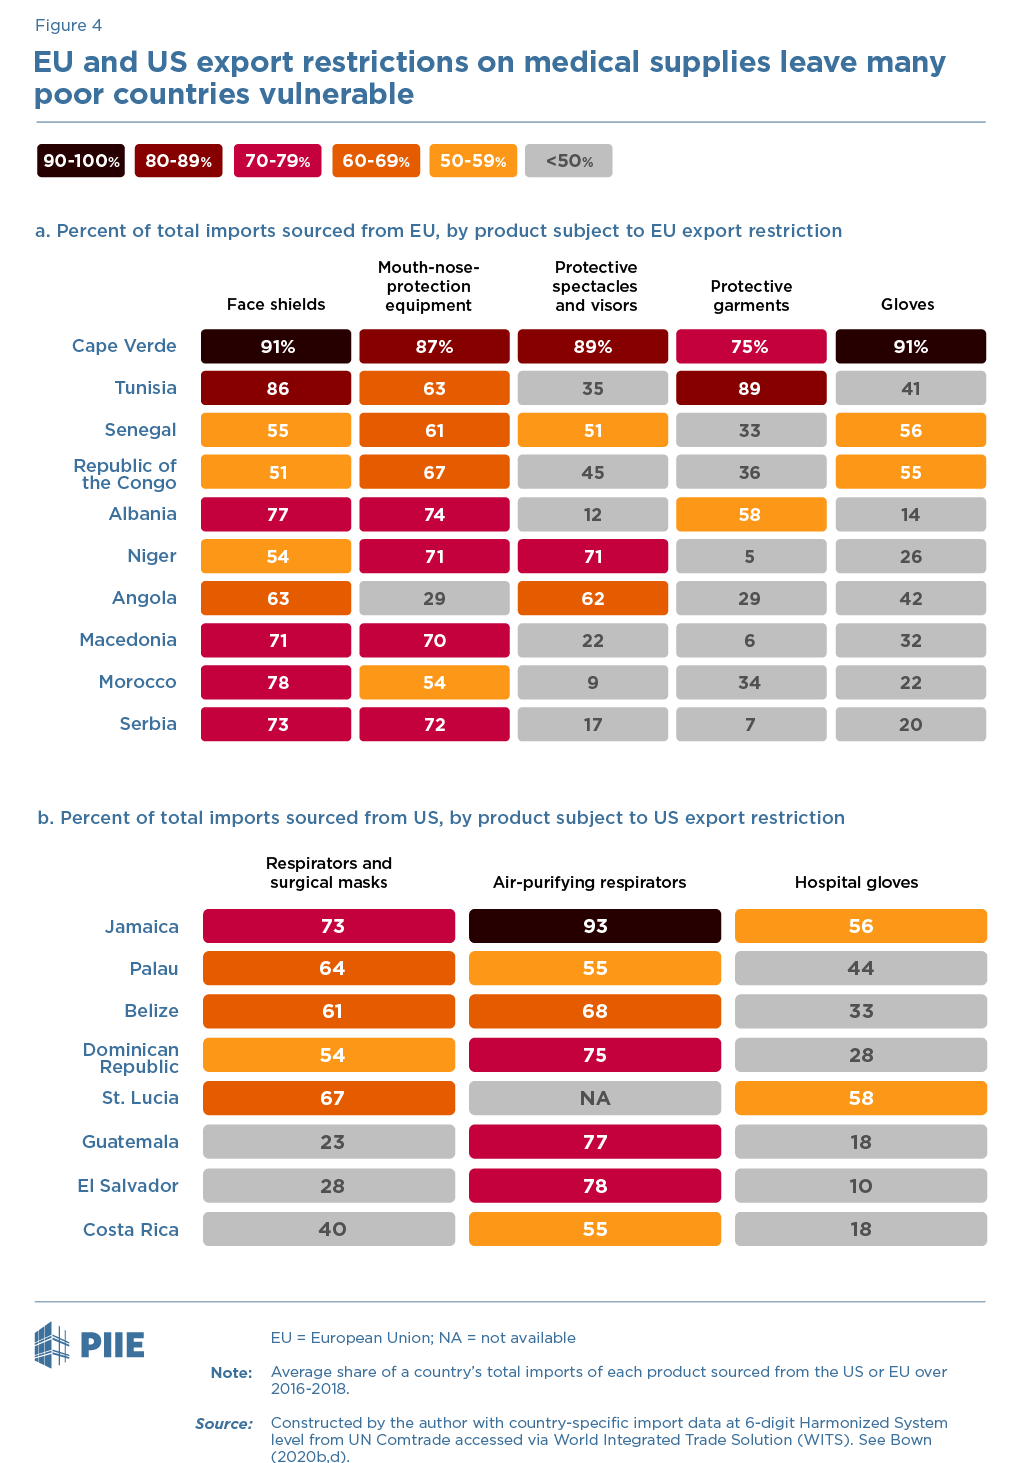 Figure 4 EU and US export restrictions on medical supplies leave many poor countries vulnerable